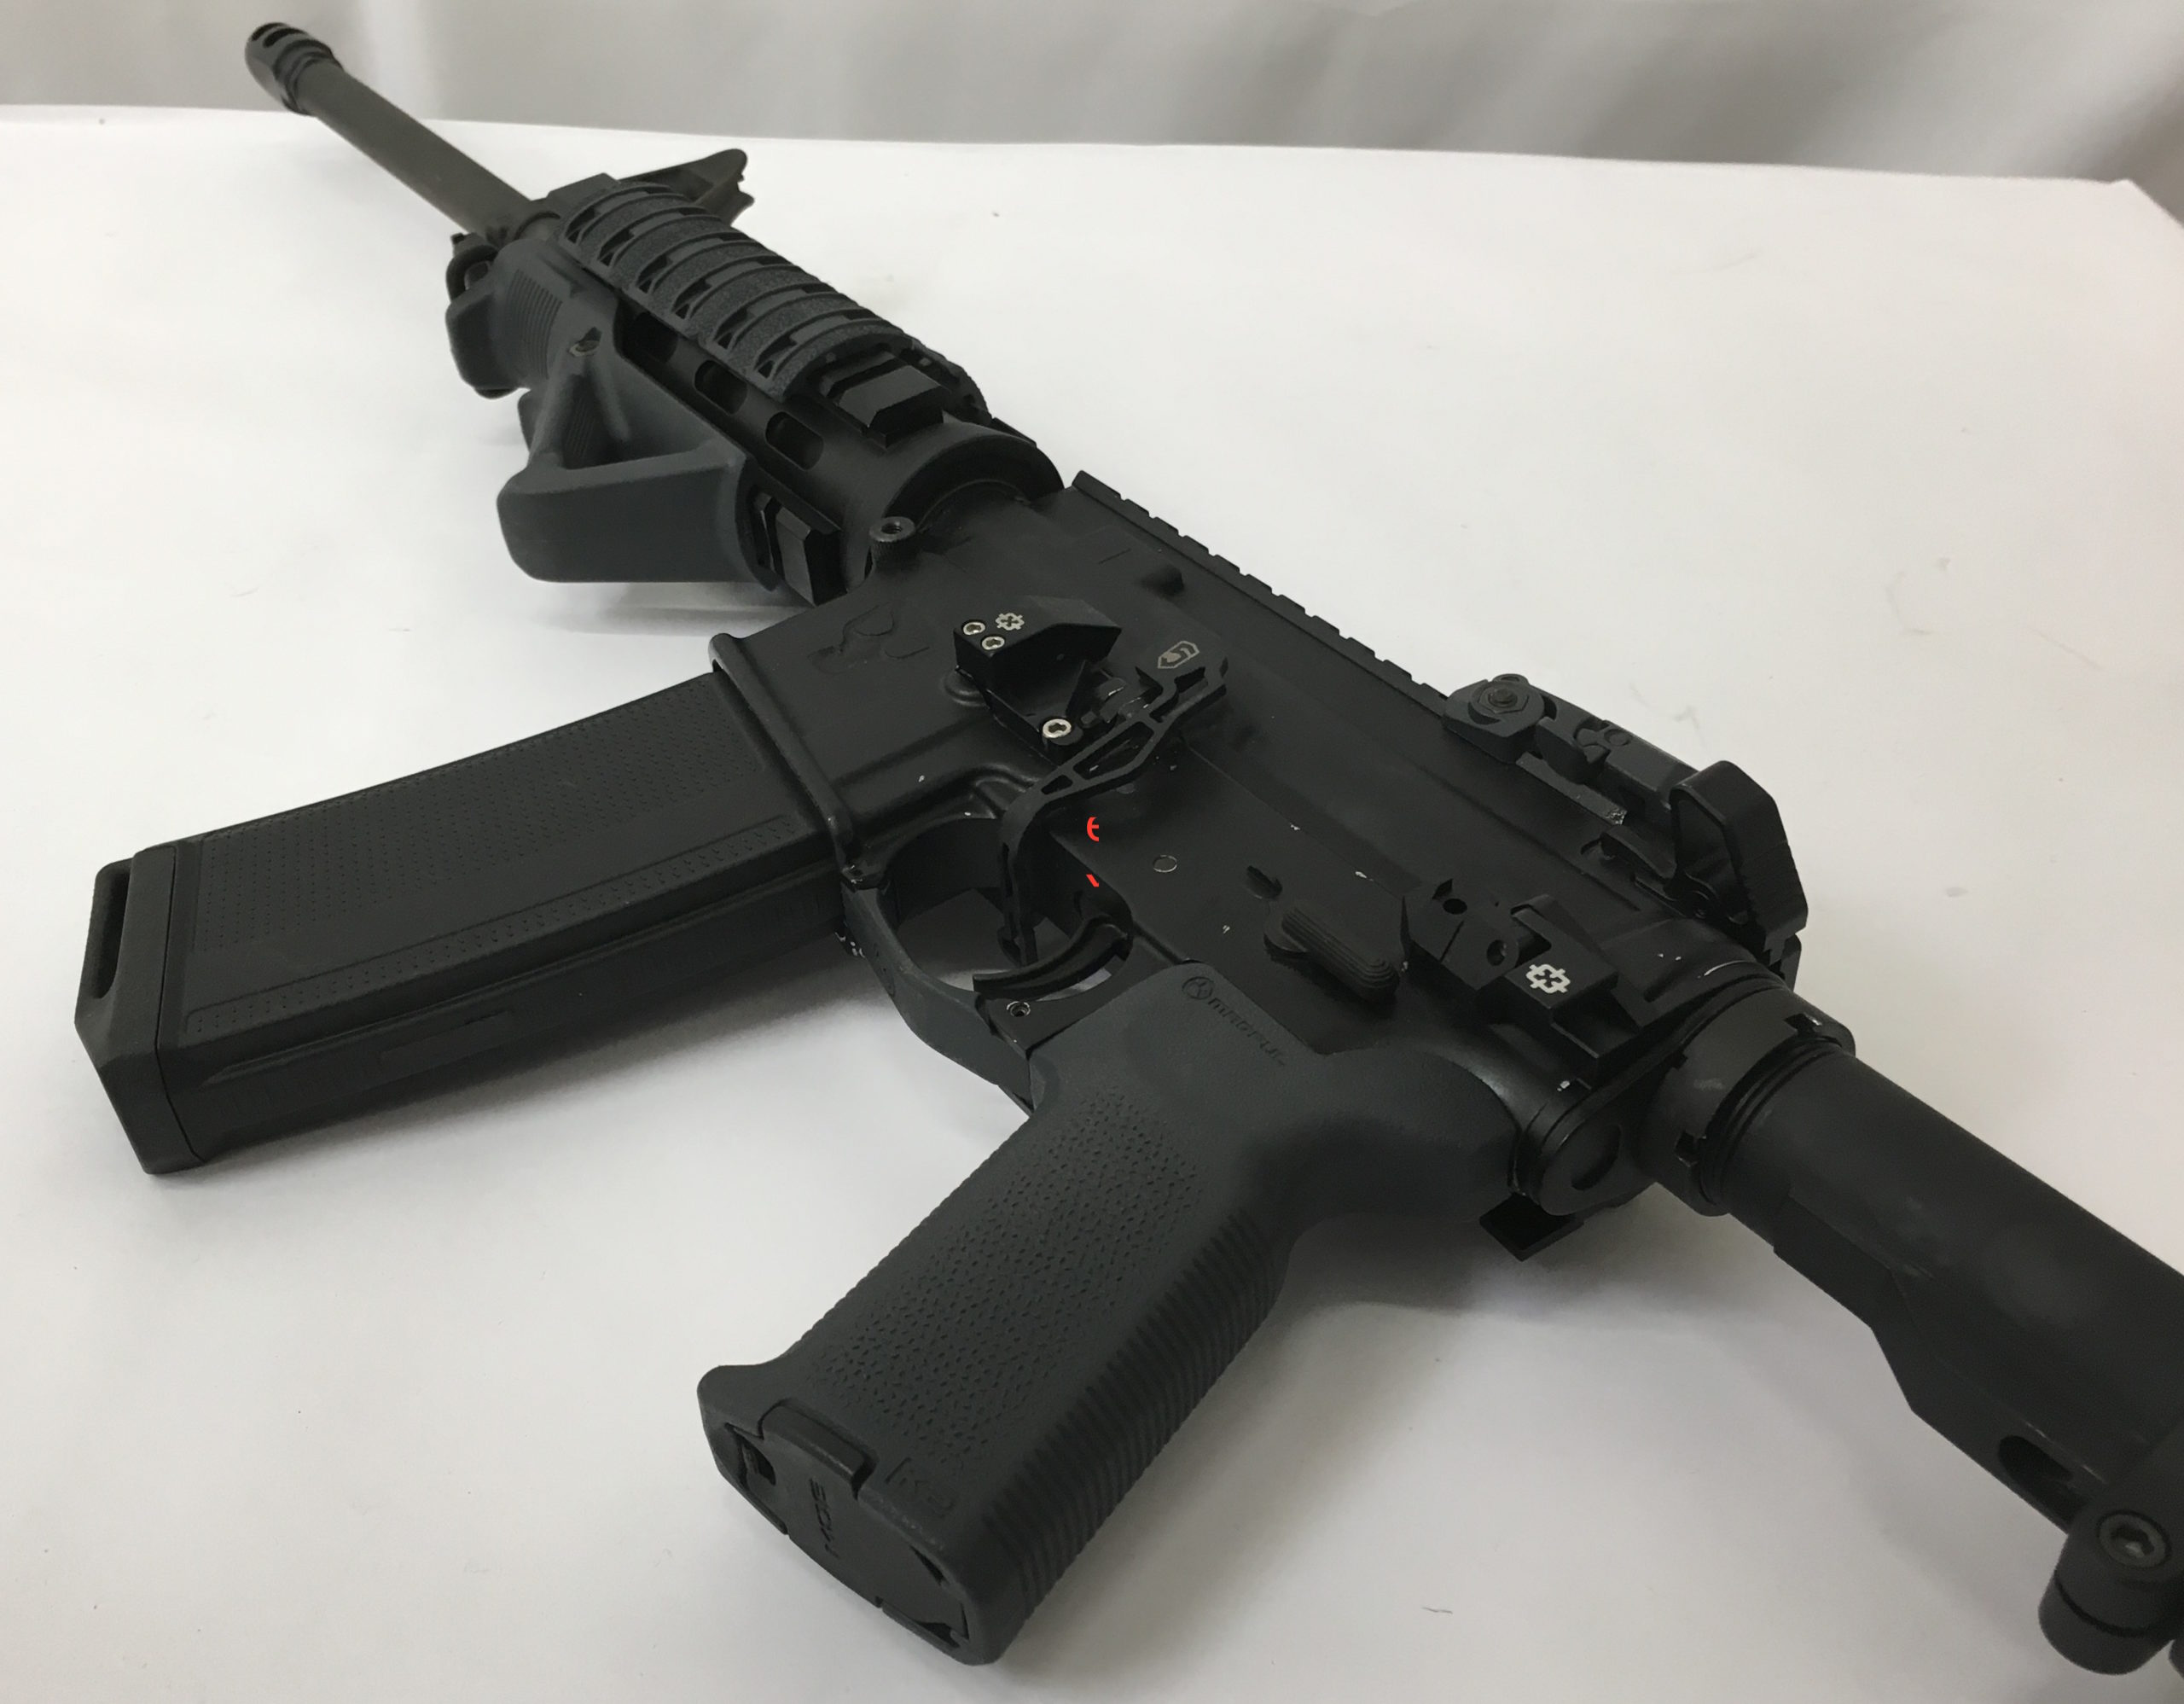 AR-15 Cleaning Kits: Pre-made Or Build Your Own